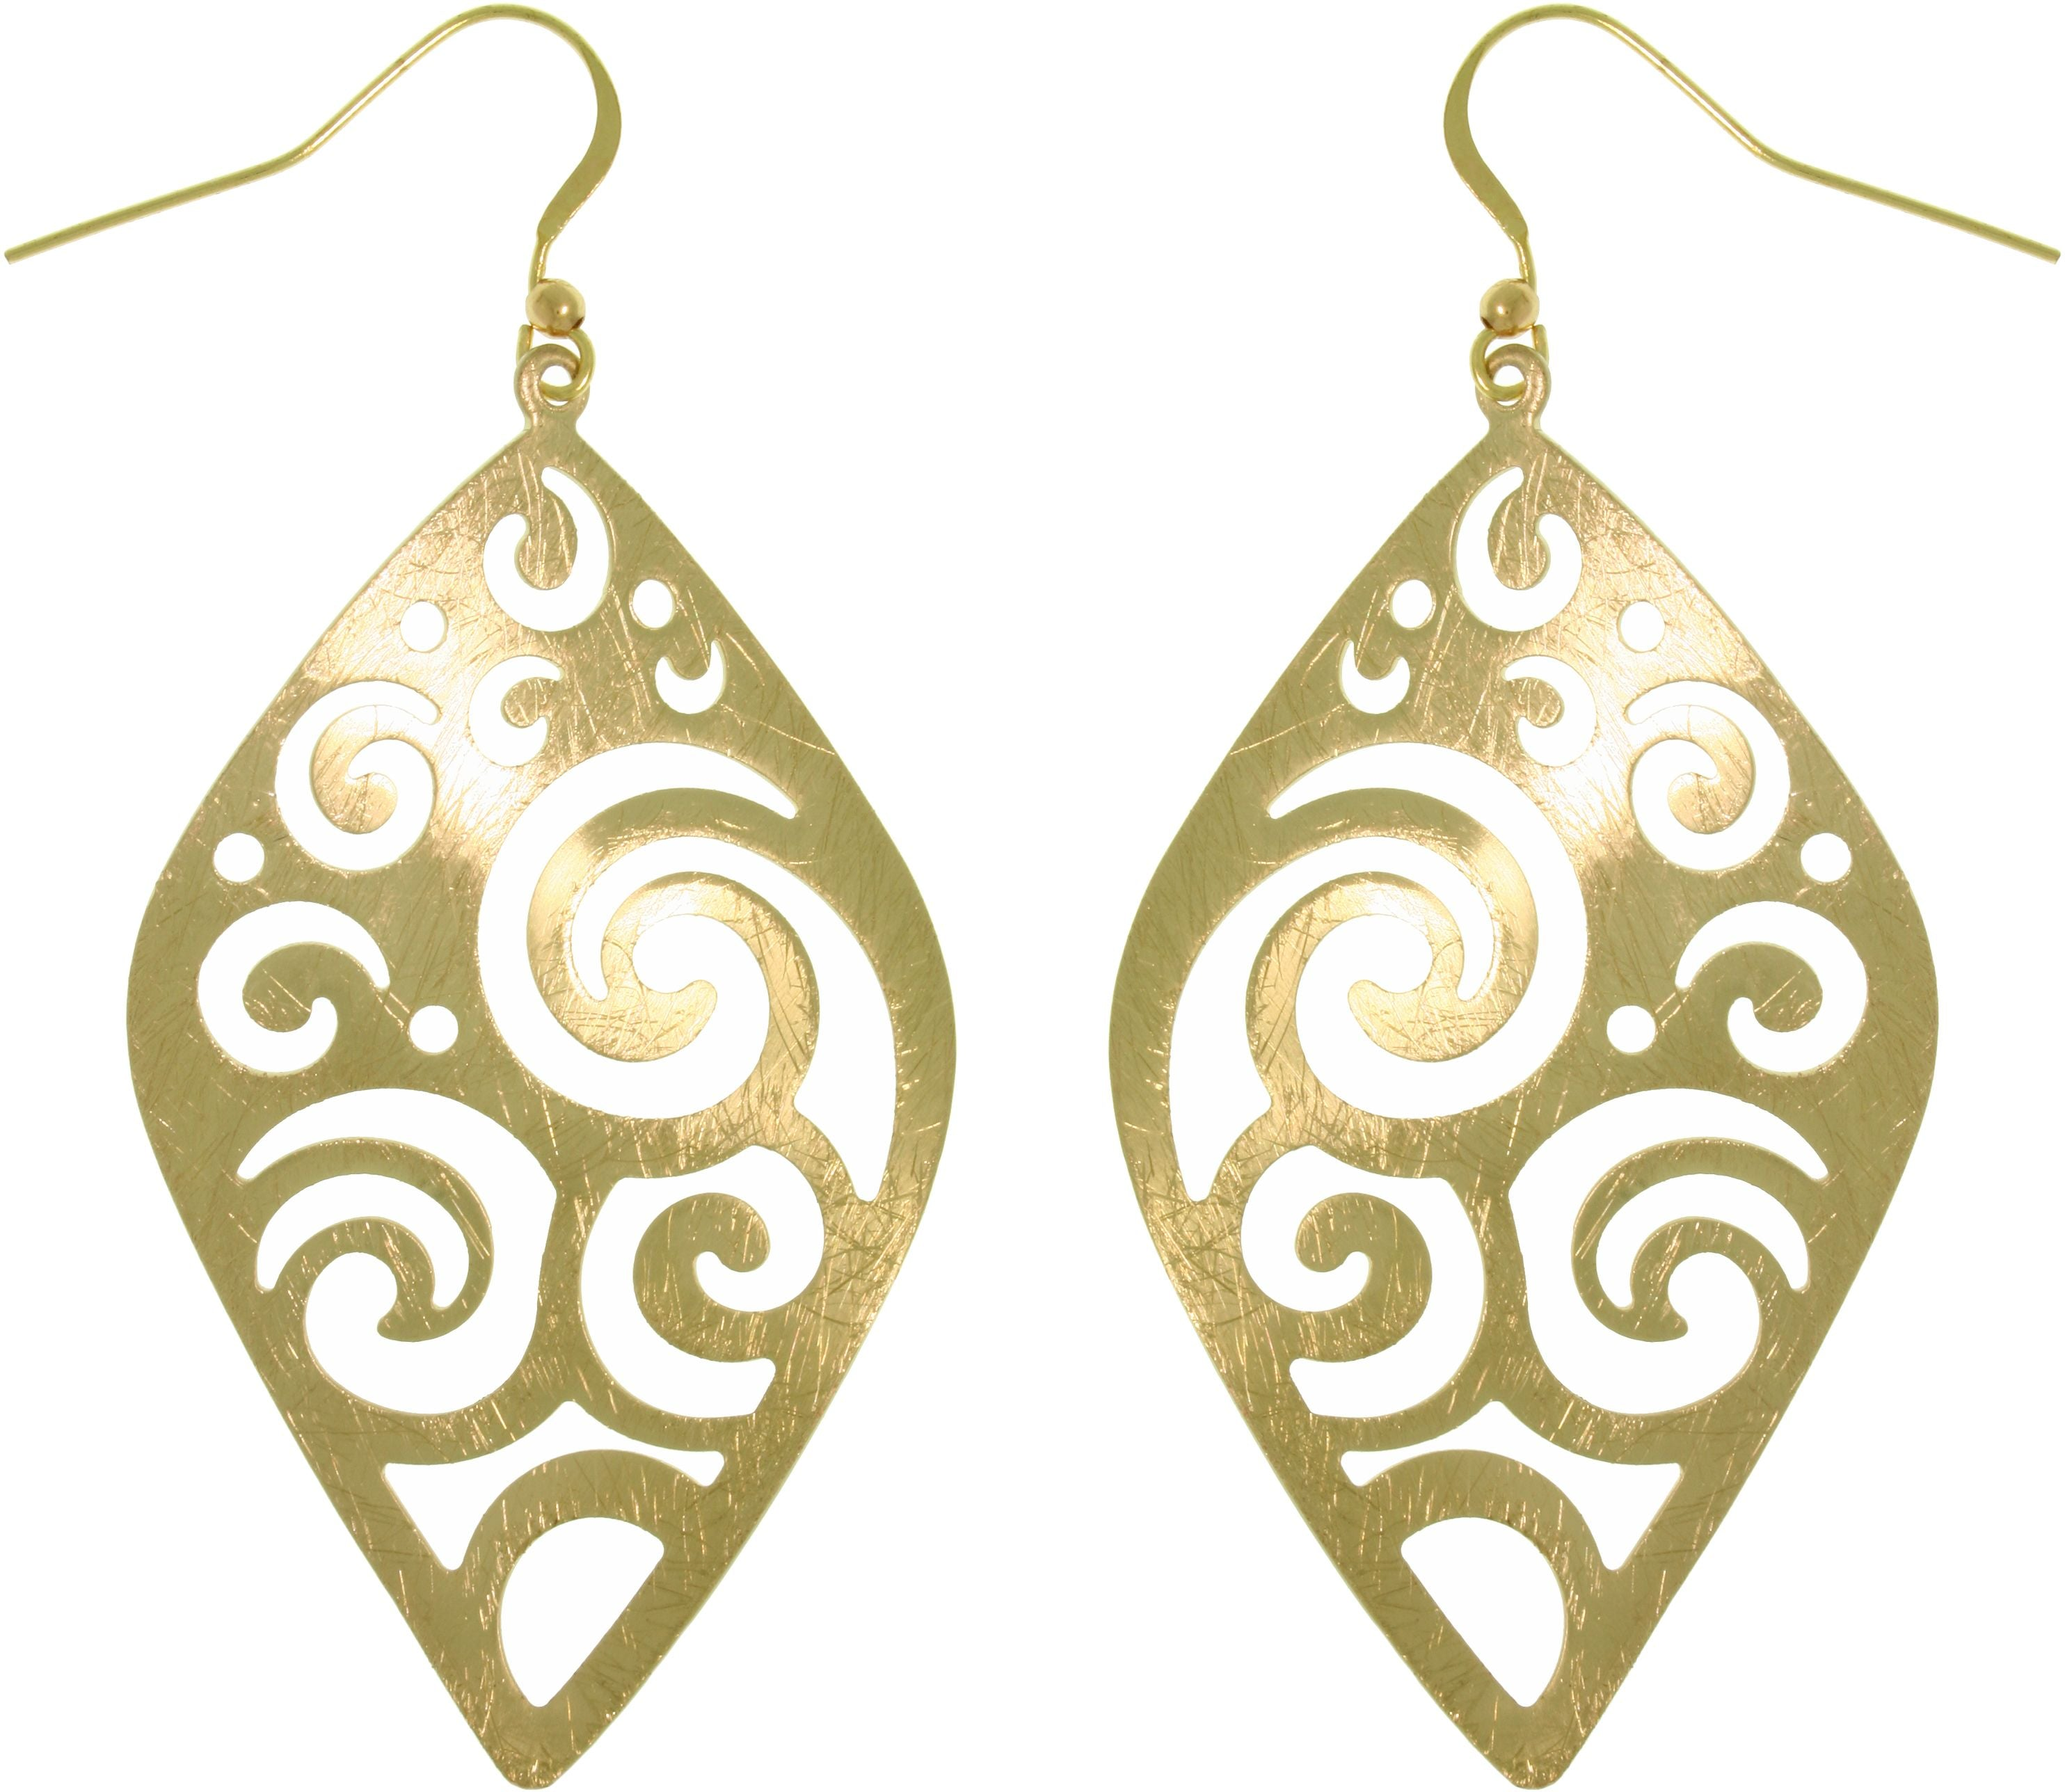 Jewelry Trends Goldtone Brass Weightless Large Diamond Shaped Wavy Filigree Swirl Dangle Earrings Fashion Jewelry